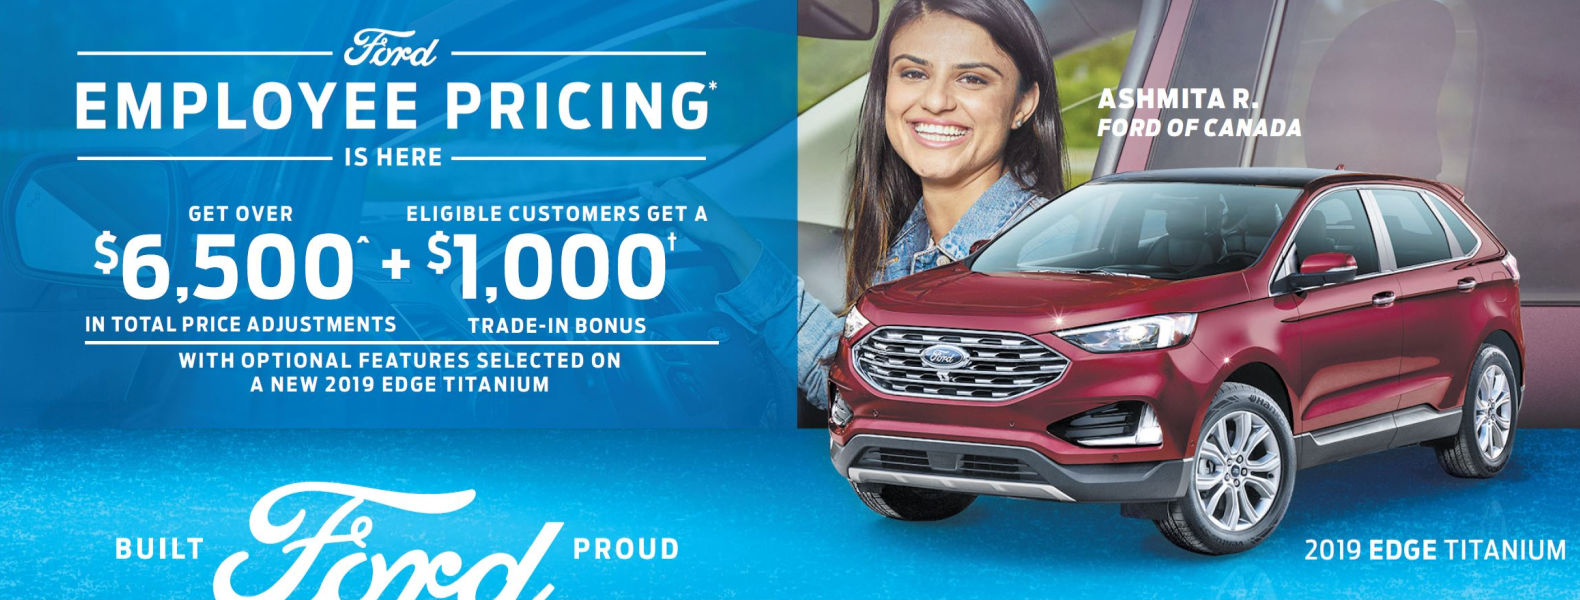 Employee Pricing Ford Edge Smiths Falls